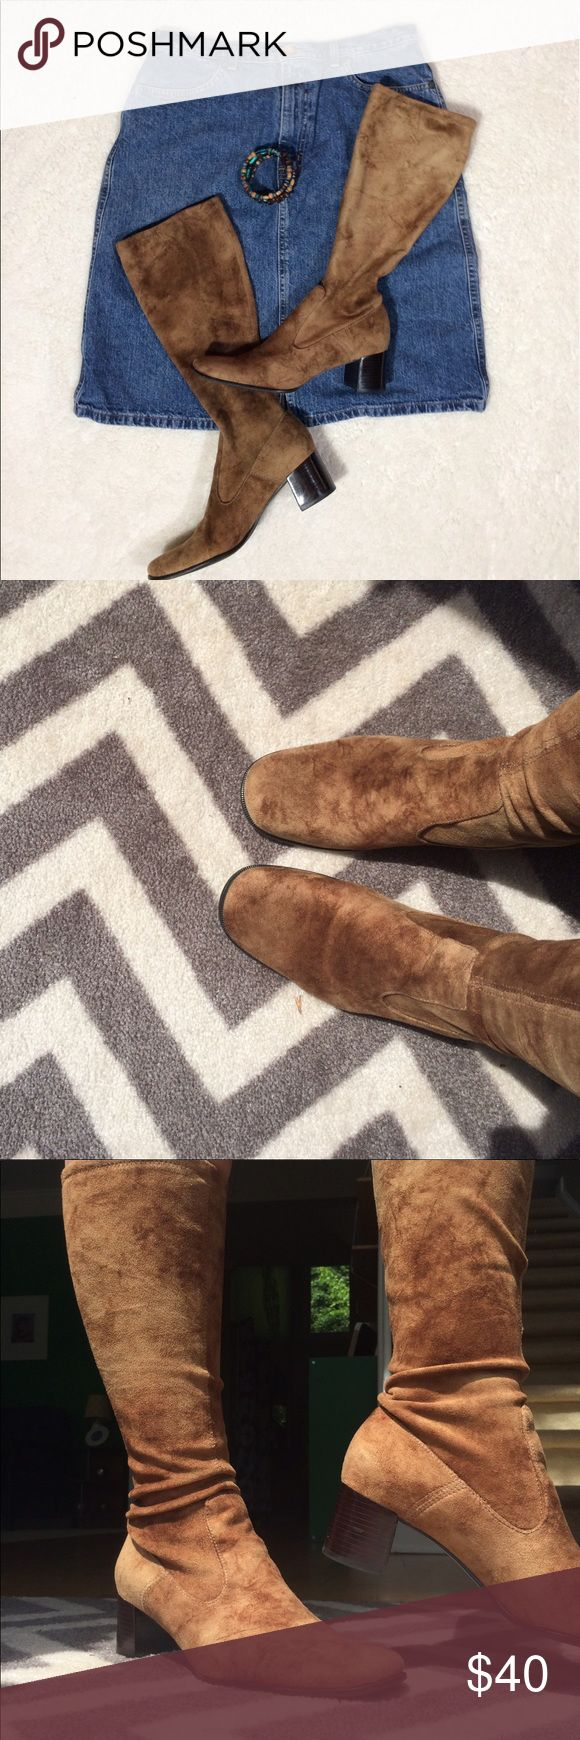 Franco Sarto Soft Light Brown Boots EUC Great Condition! Very soft and somewhat stretchy. Reaches mid calf. Size 8.5, 2in heels, top of boot is 14.5in from top of heel Franco Sarto Shoes Heeled Boots